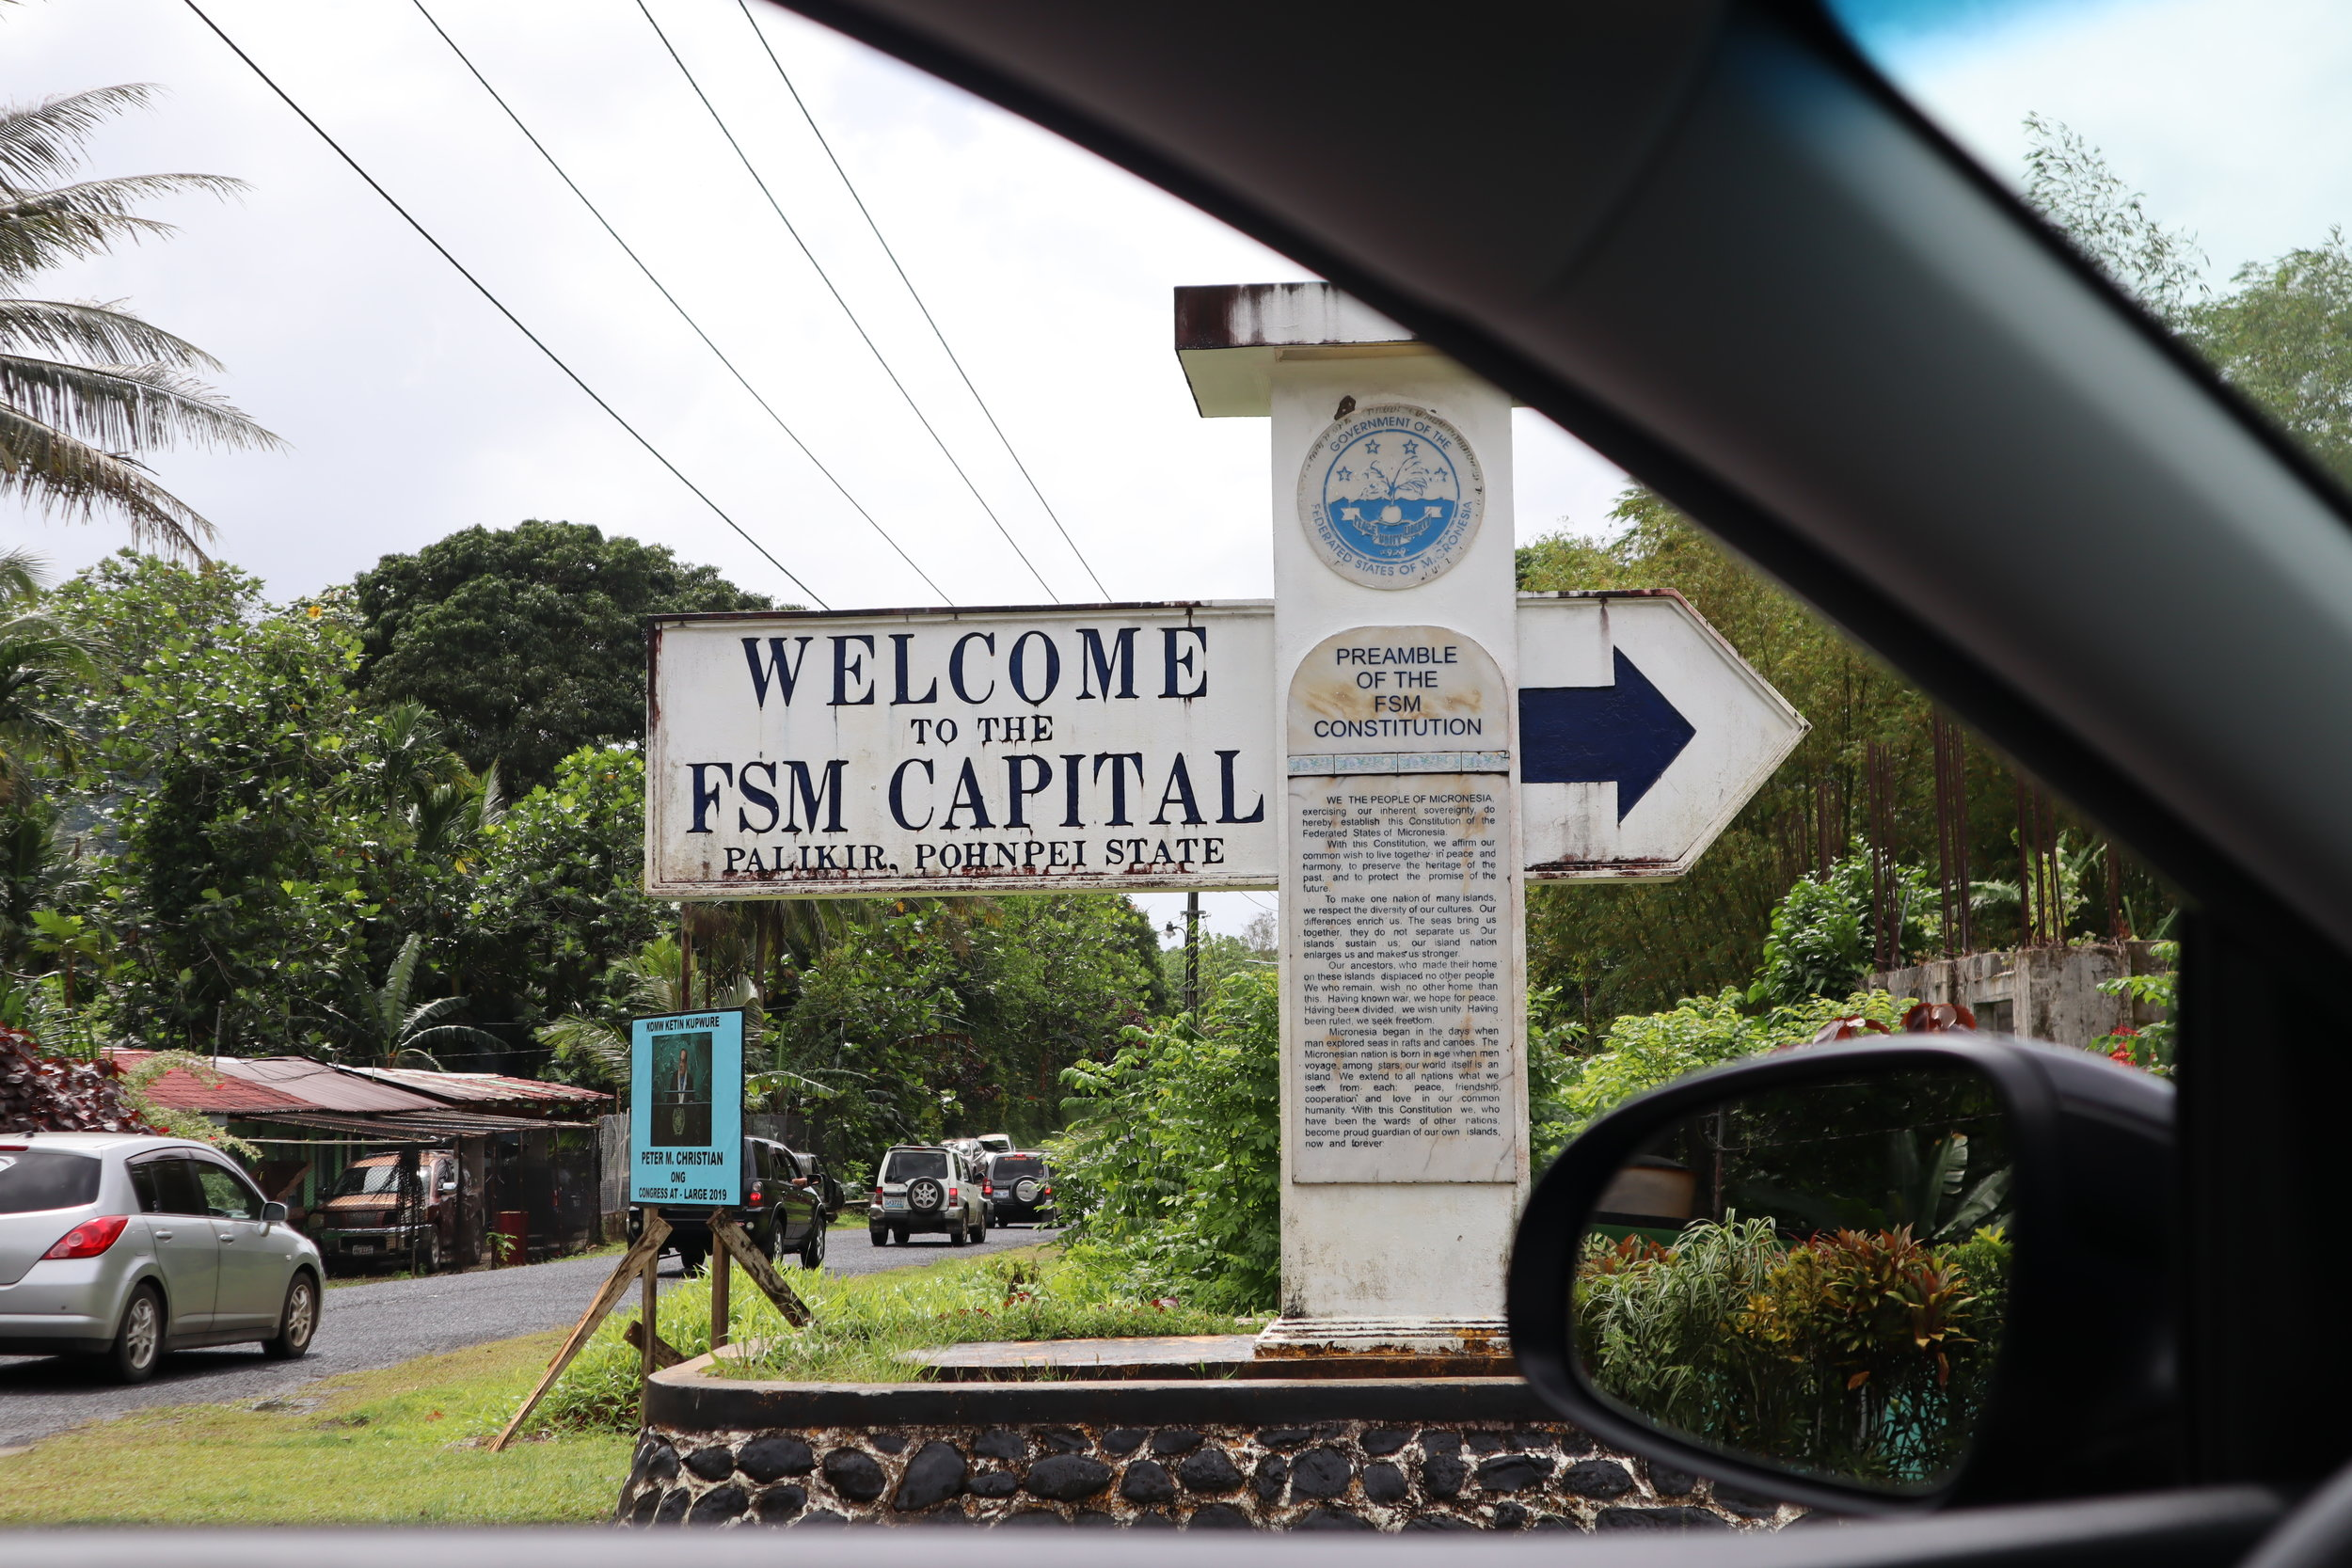 The road to Palikir, the capital